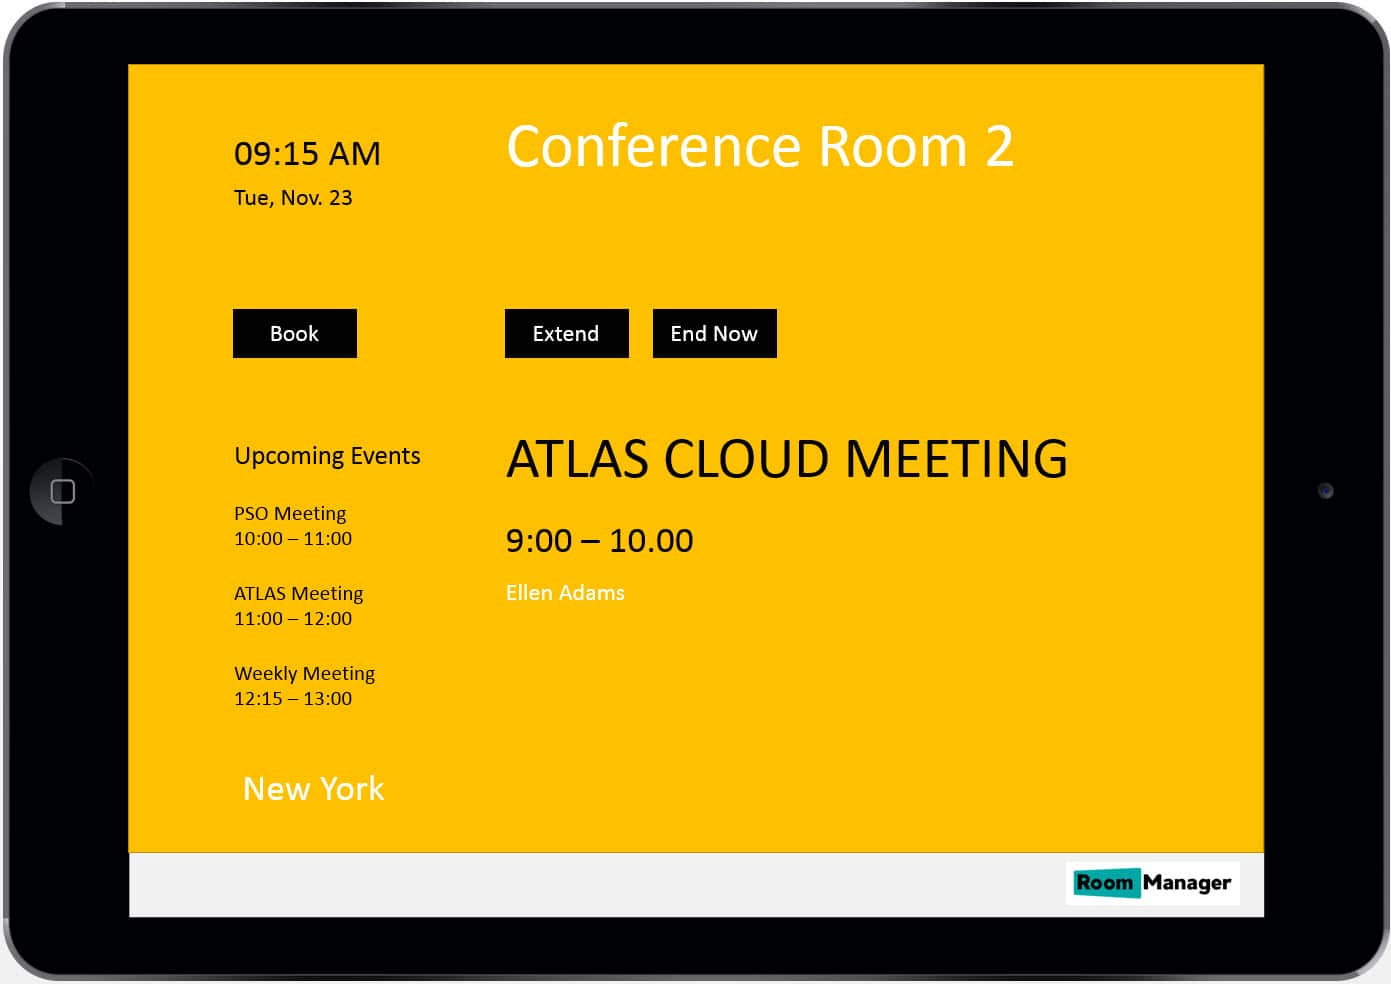 Conference Room Booking Software For Office 365 And Sharepoint